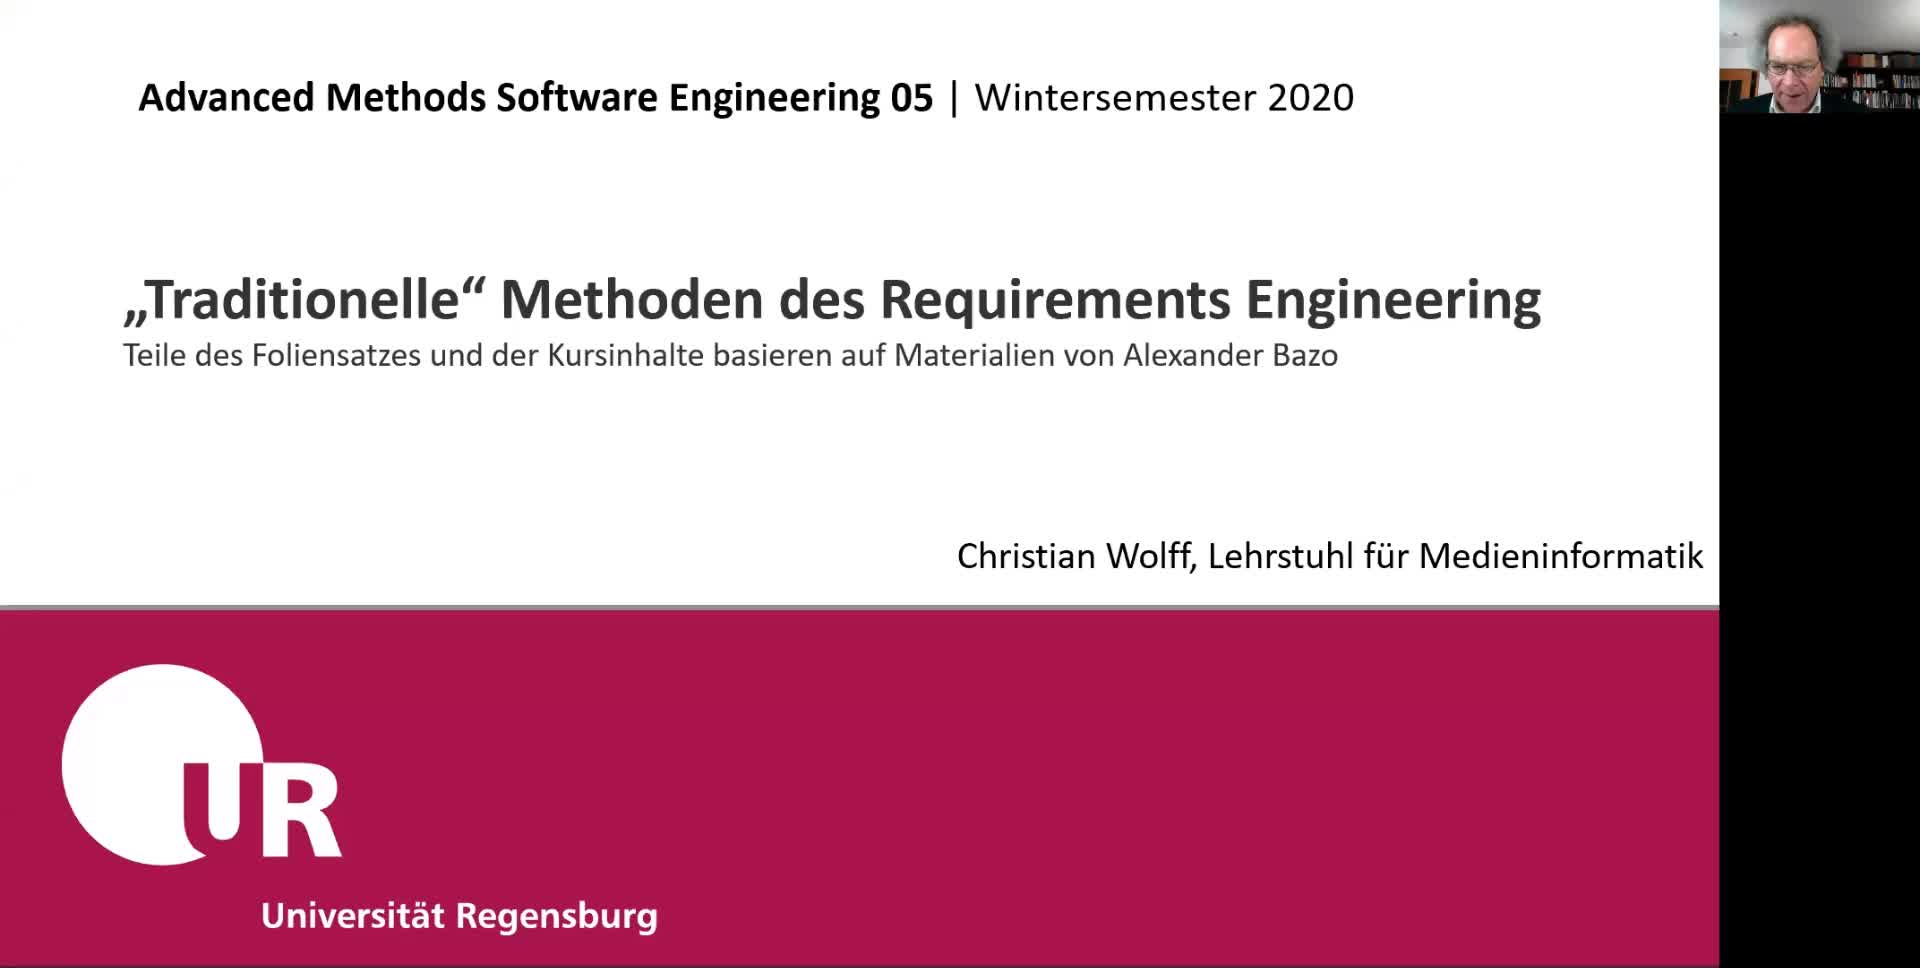 Advanced Software Engineering 05: Traditionelle Methoden im Requirements Engineering